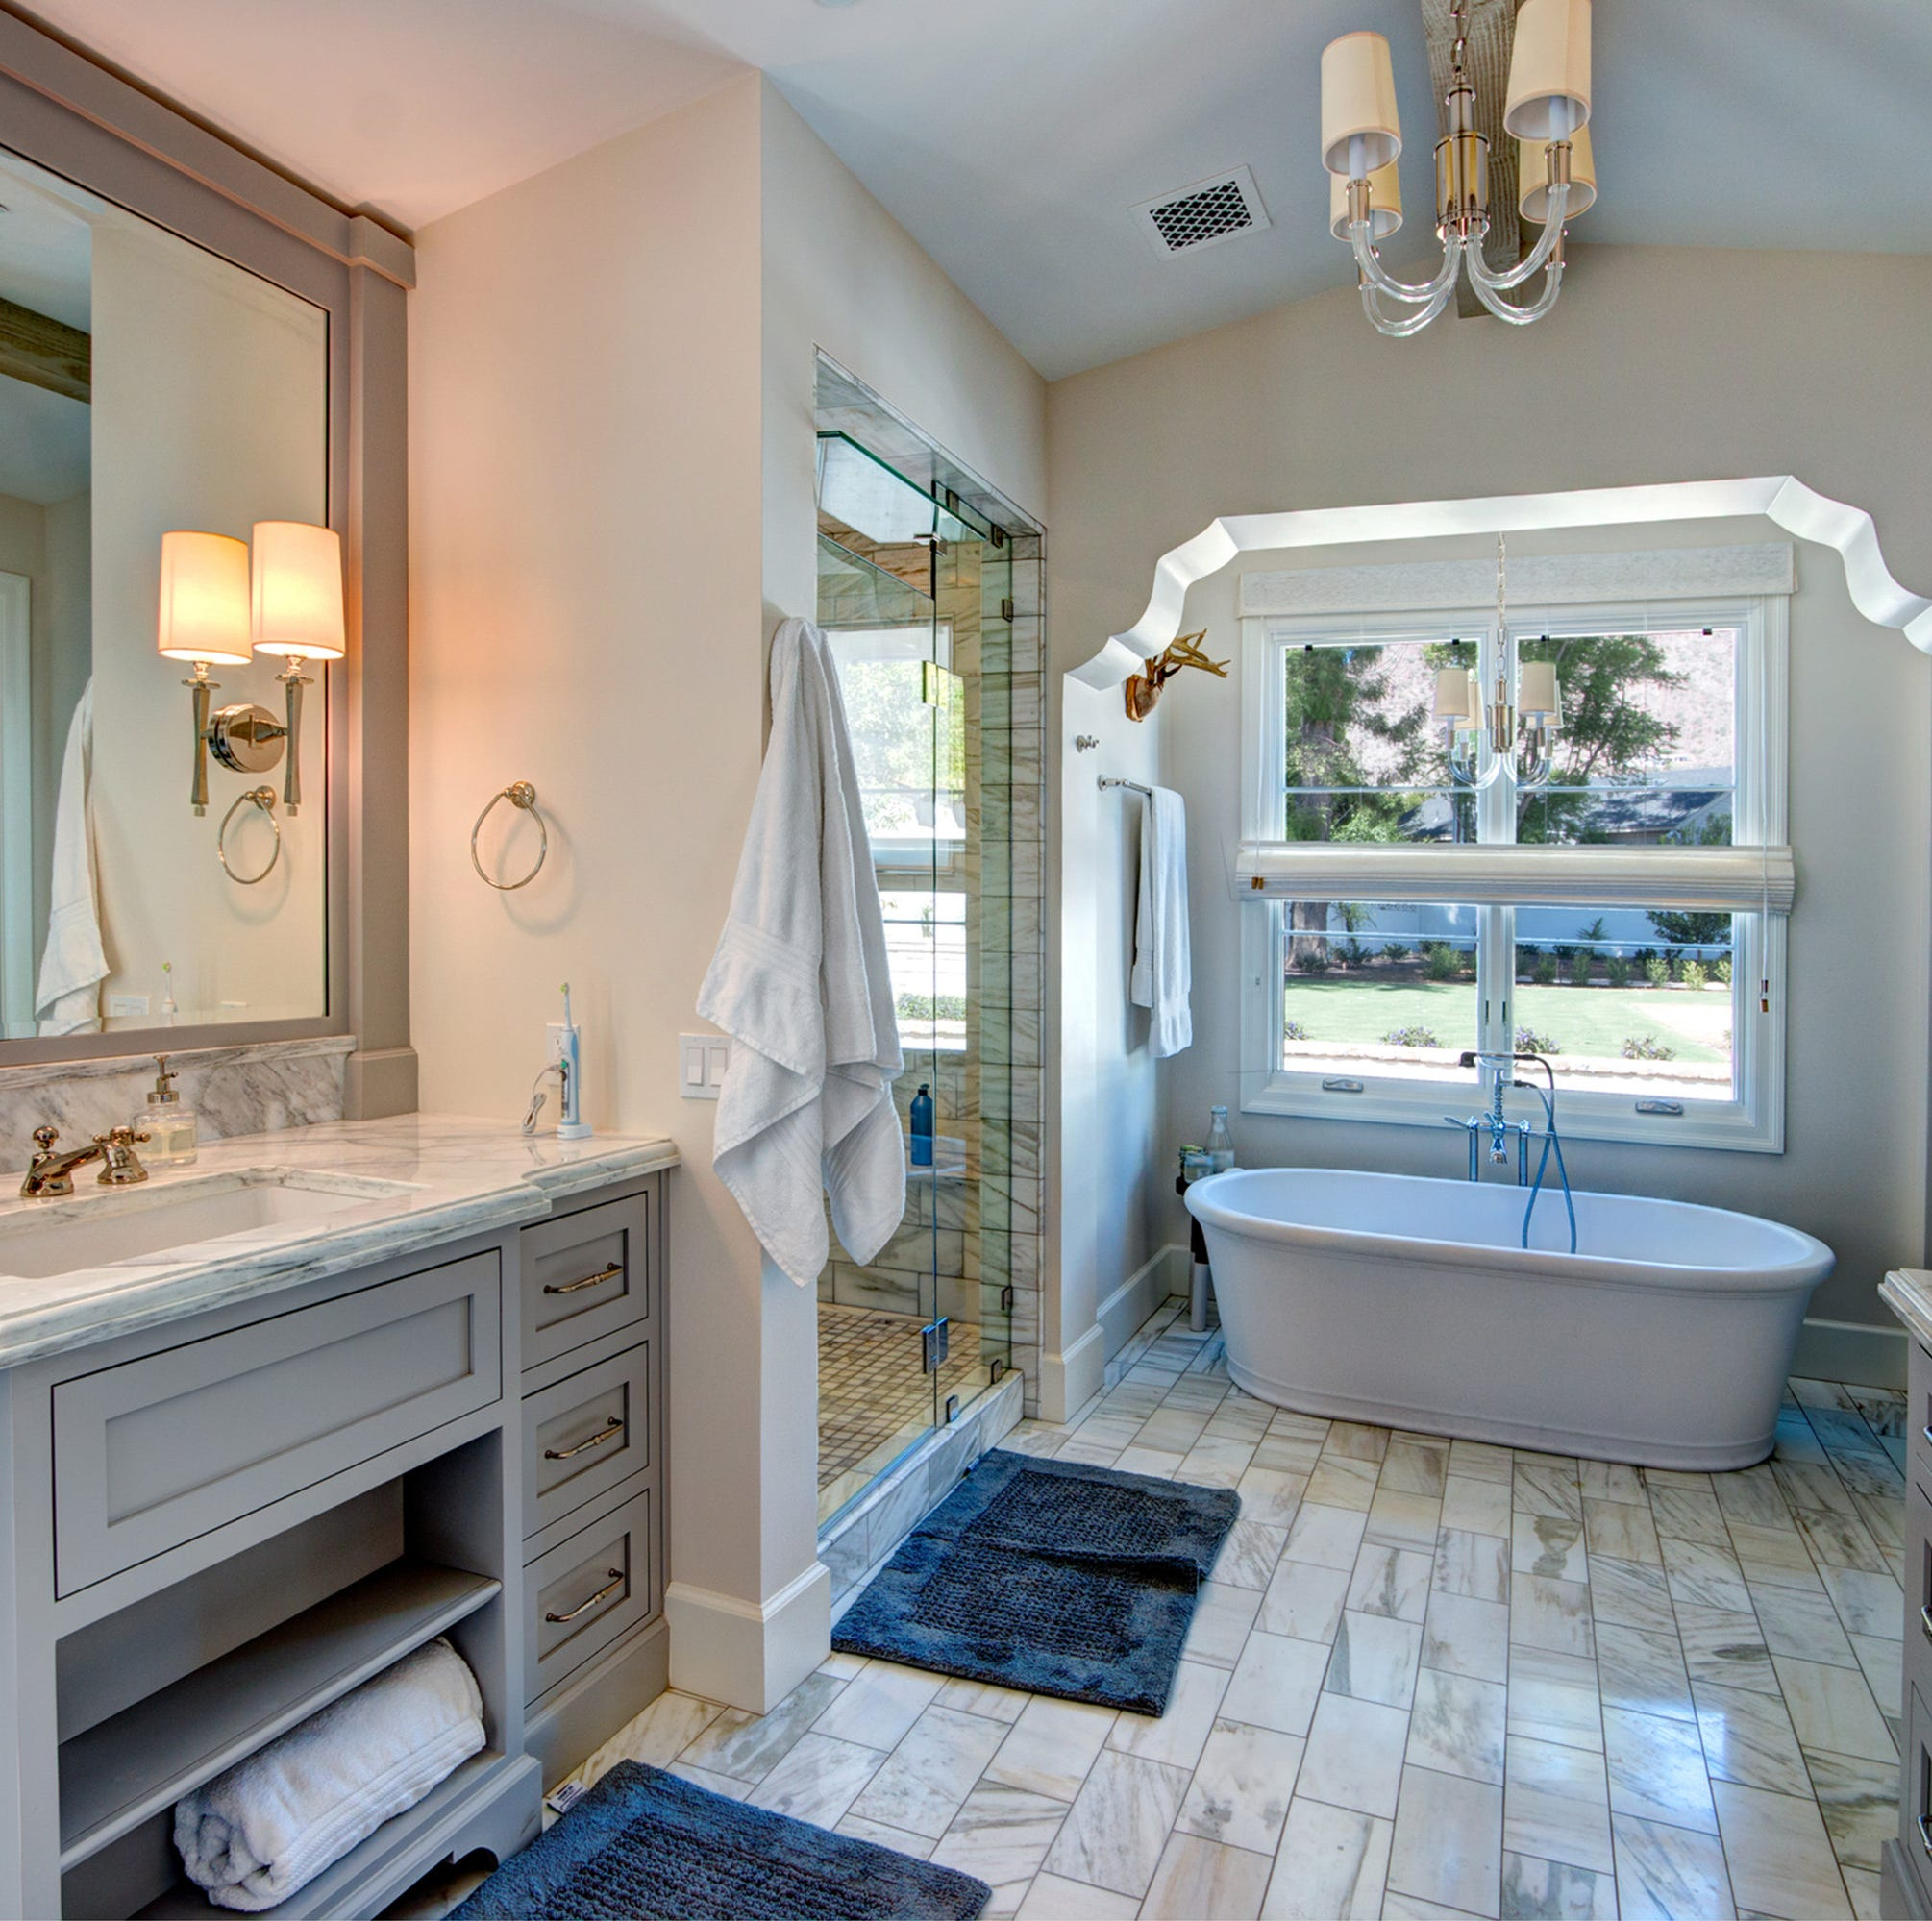 Home Advisor: Bathroom materials -- What to embrace and what to avoid